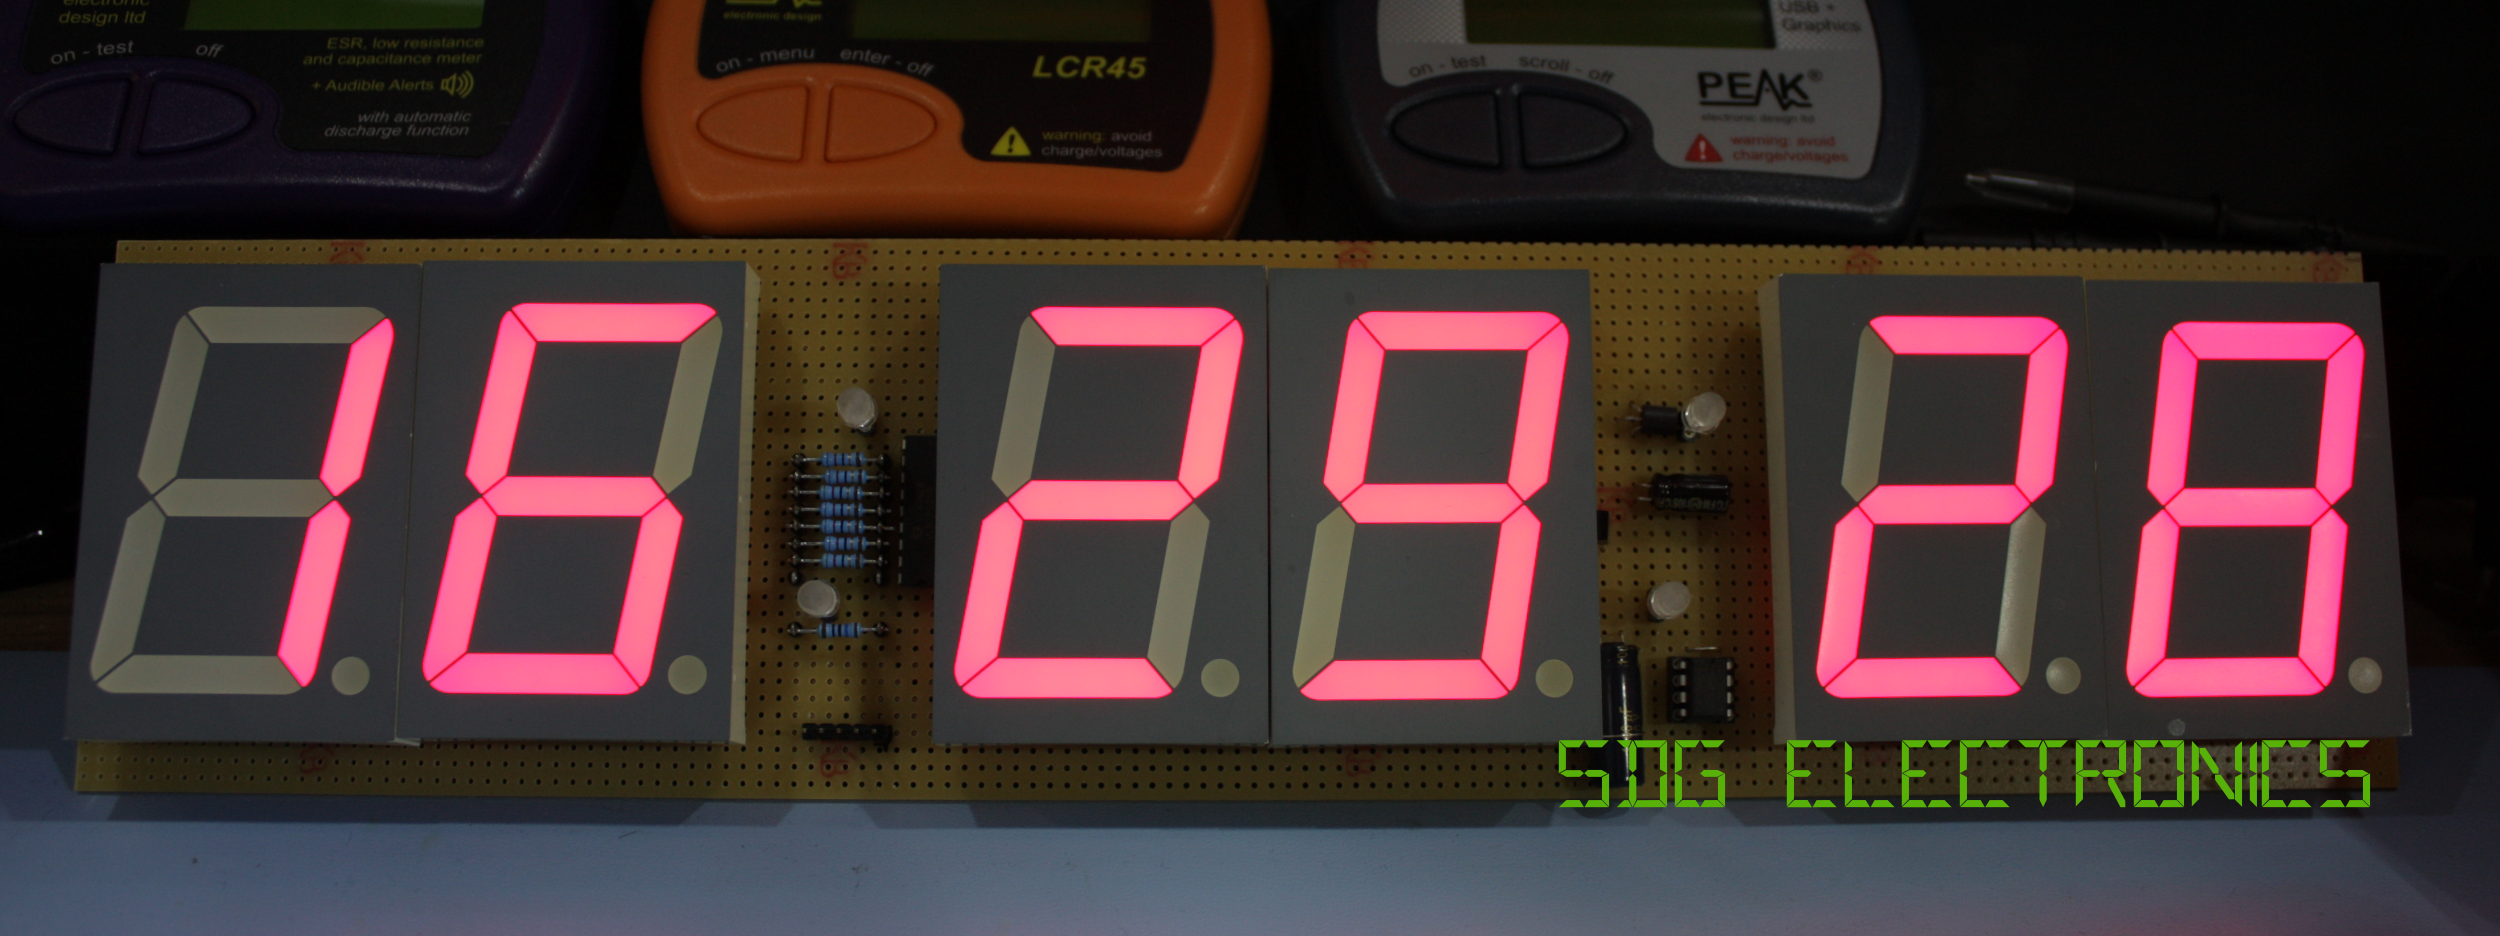 6 Digit Led Clock Sdg Electronics Arduino 7 Segment Display Wiring On Circuit Diagram I Recently Found Six 23 Red